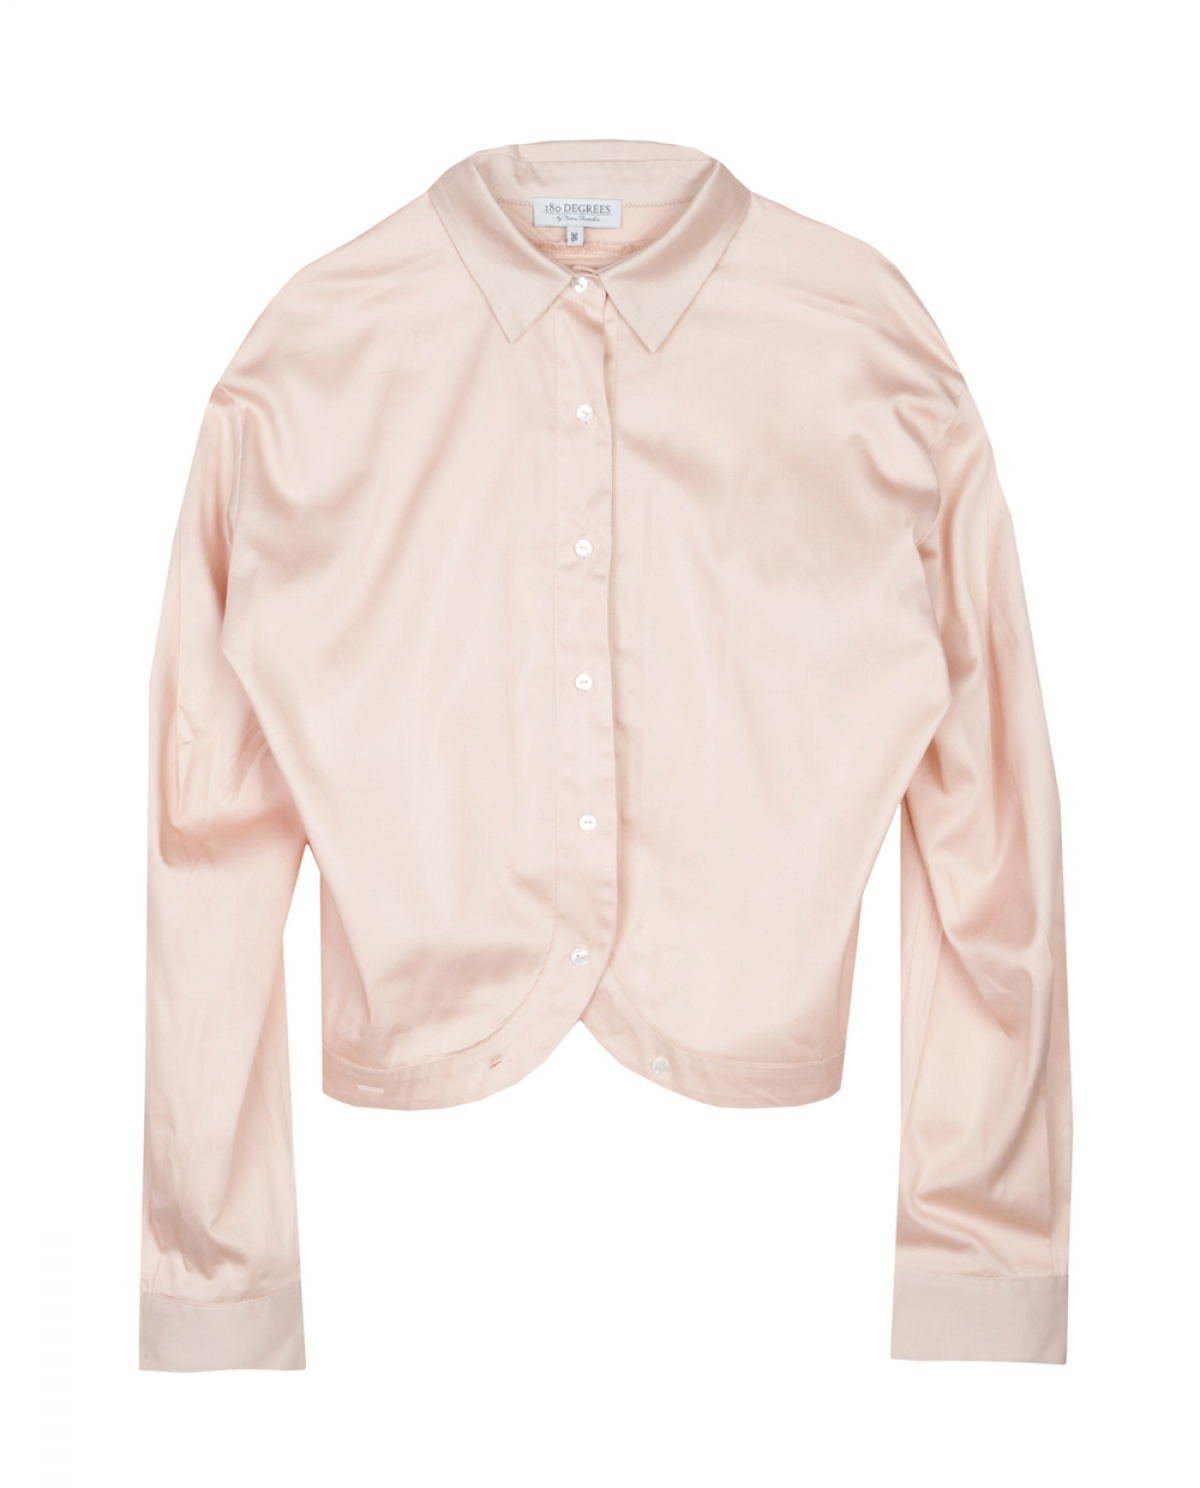 Blush Pink Shirt - Fashionnoiz